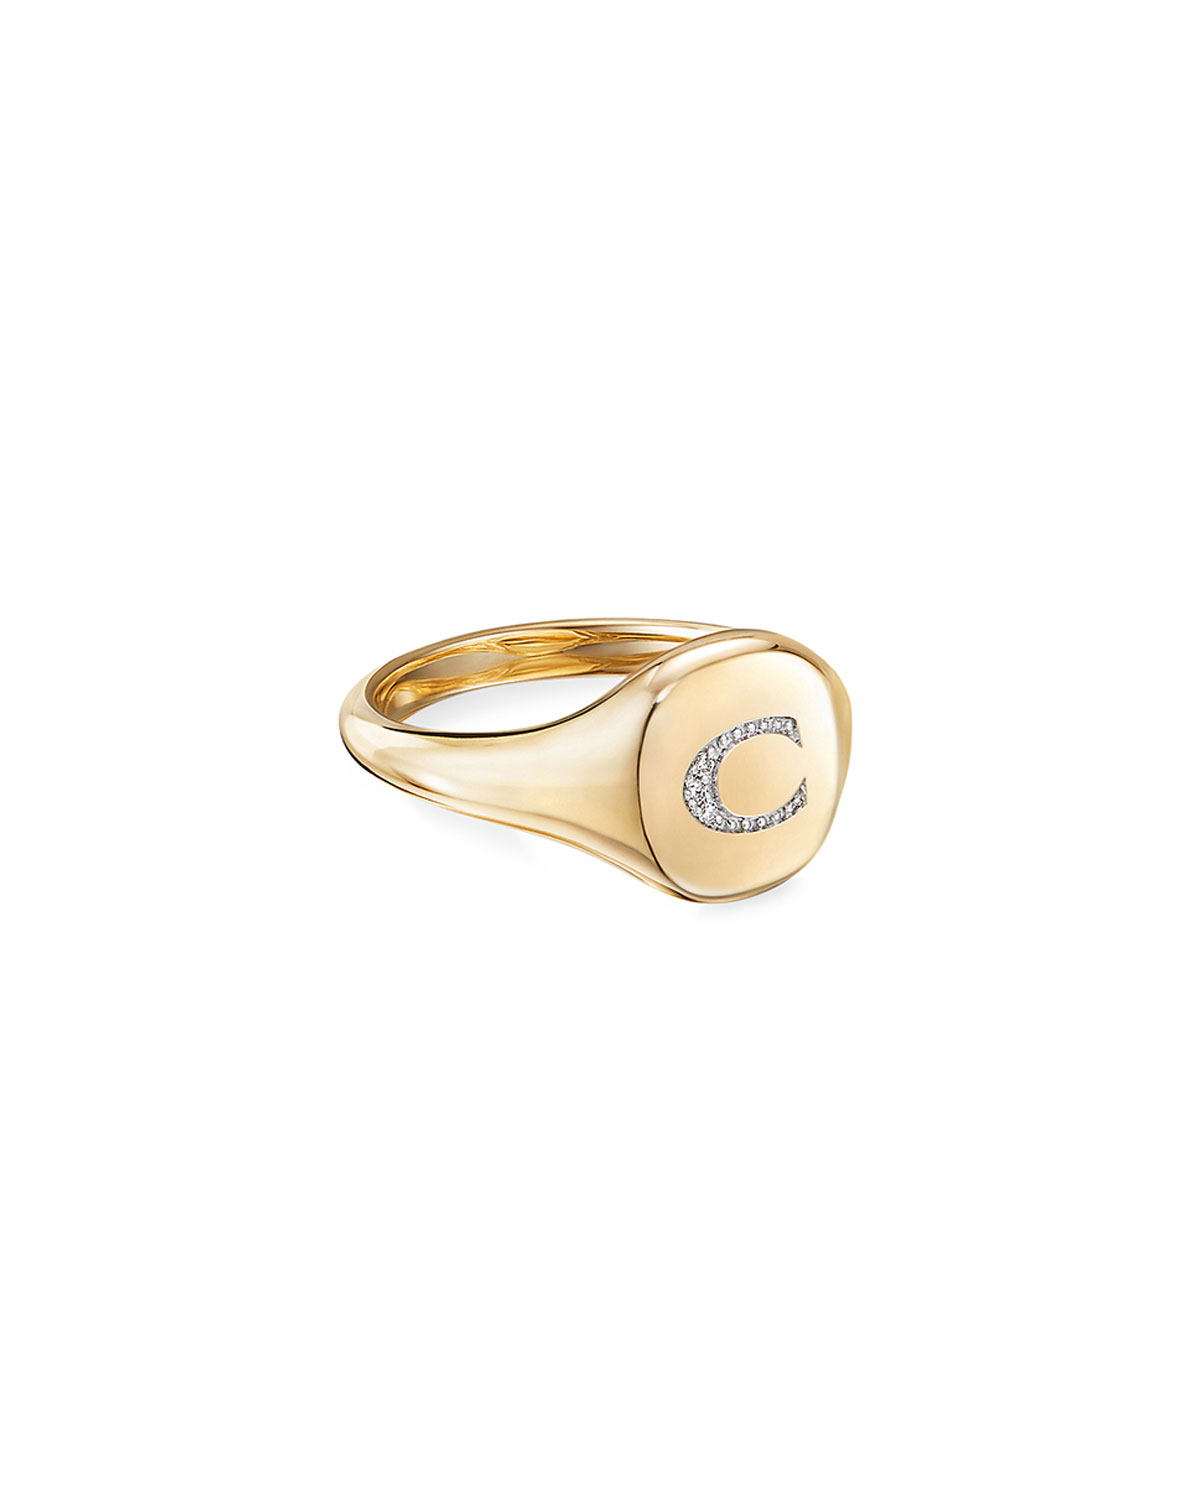 David Yurman Mini DY Initial C Pinky Ring in 18K Yellow Gold with Diamonds, Size 3